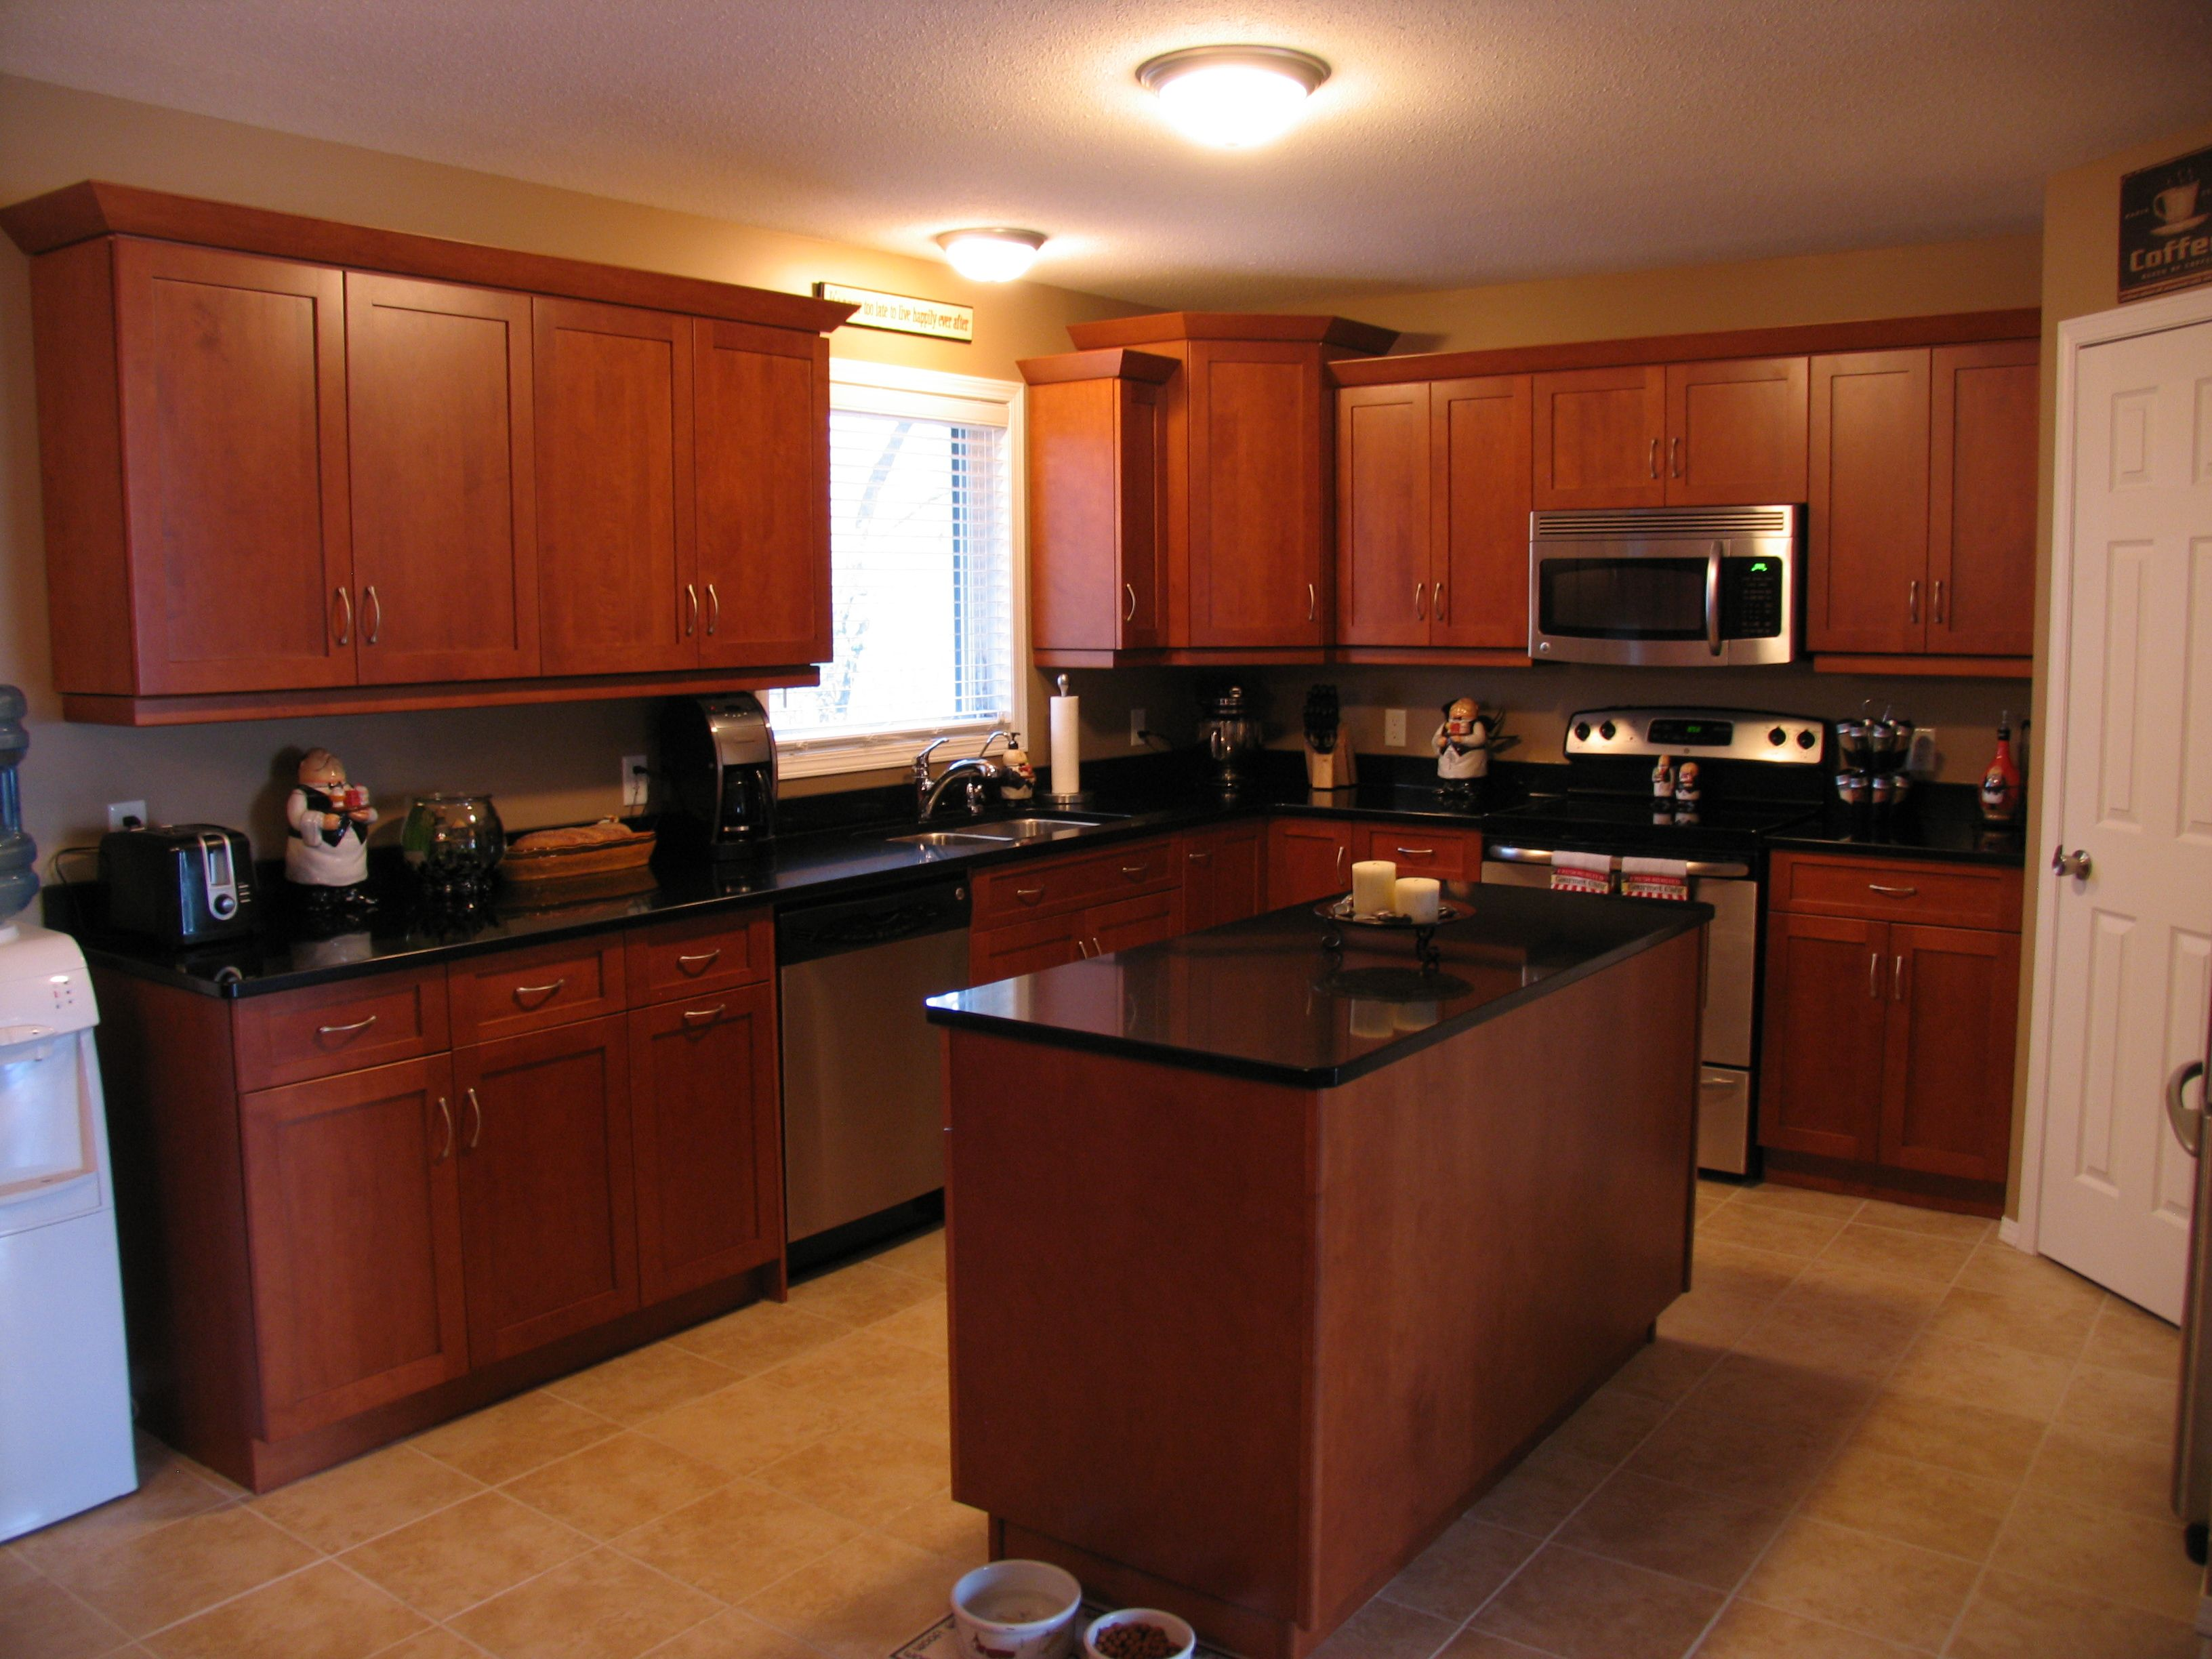 Cabinets: Maple - Honey Maple / Countertop: Cambria Quartz ... on Maple Cabinets With Black Countertops  id=42684